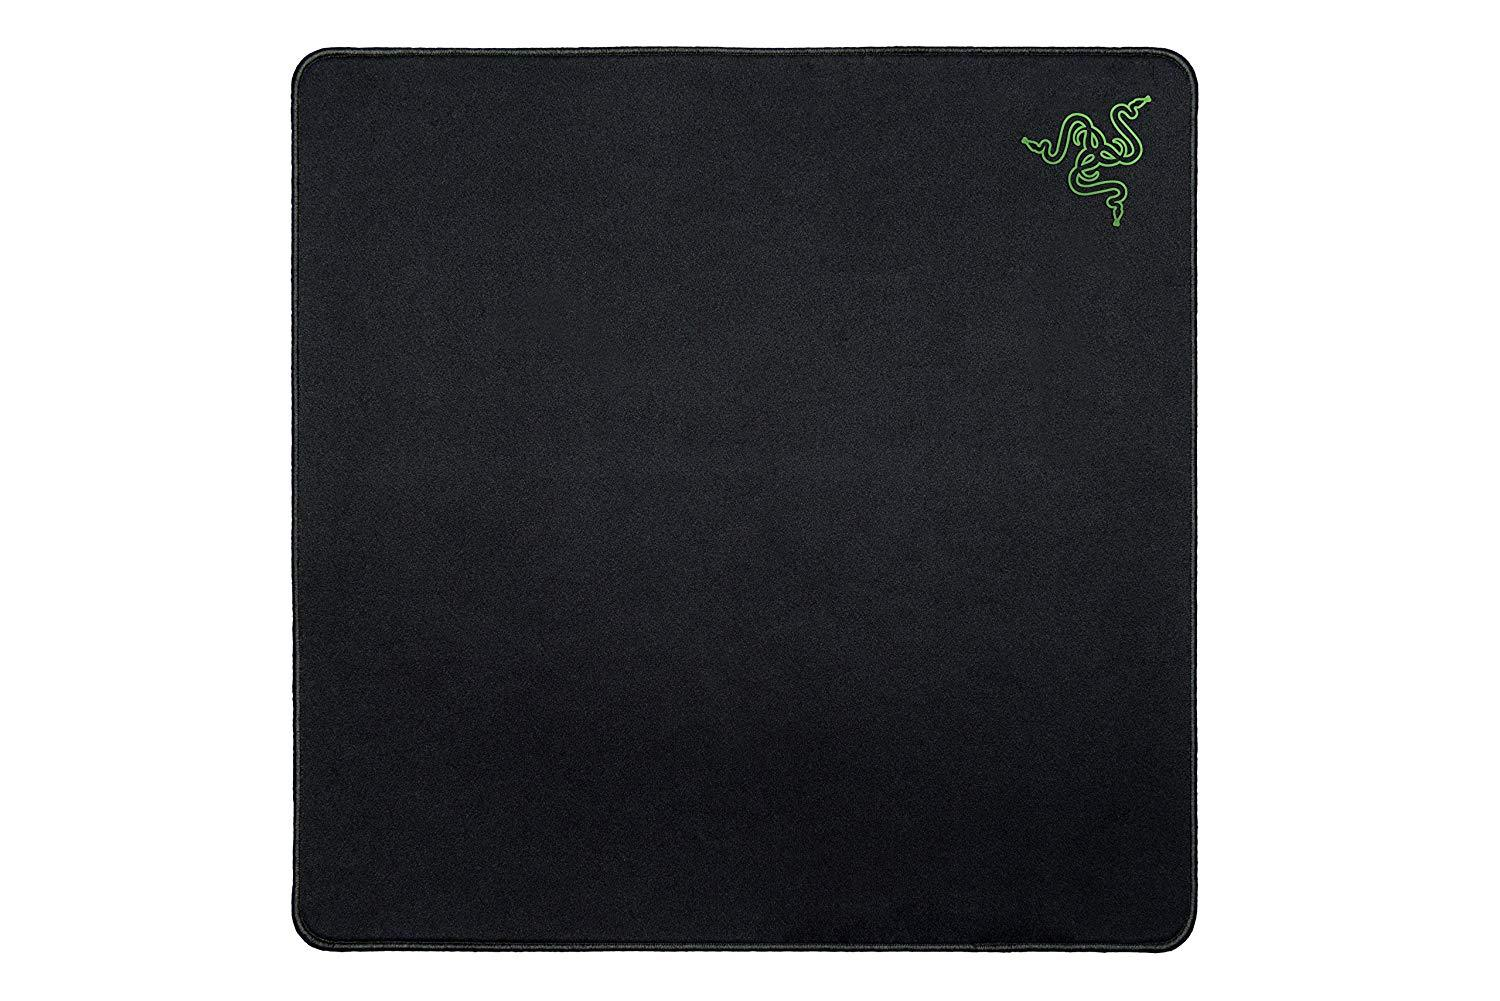 Razer Gigantus - Cloth Esports Gaming Mouse Mat